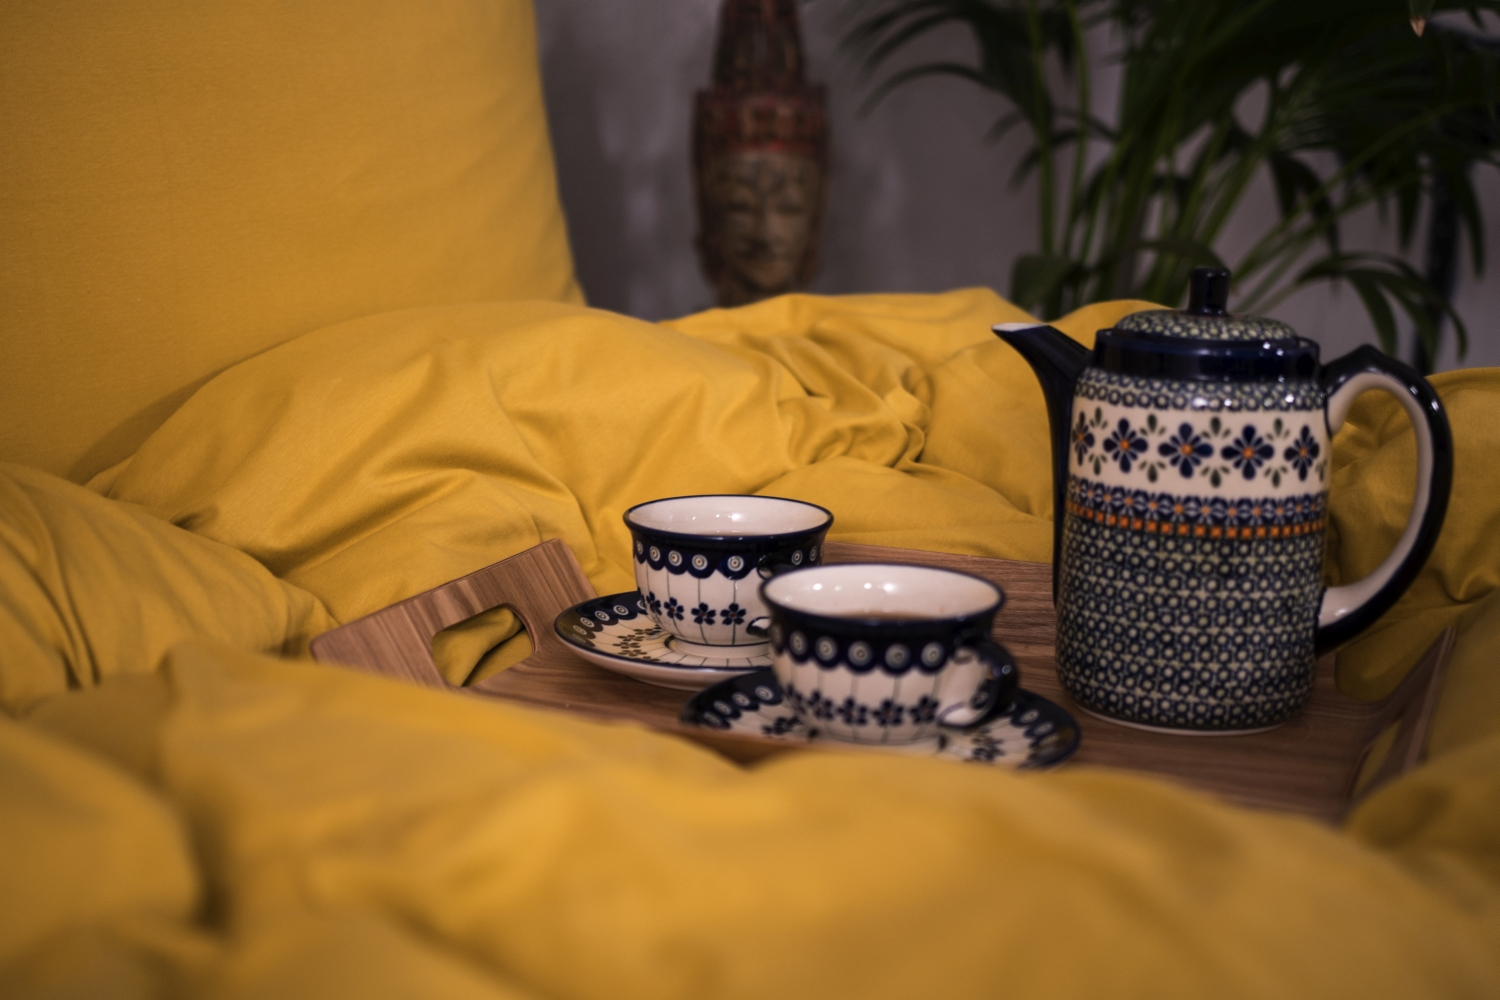 Mustard yellow knitted cotton bedding